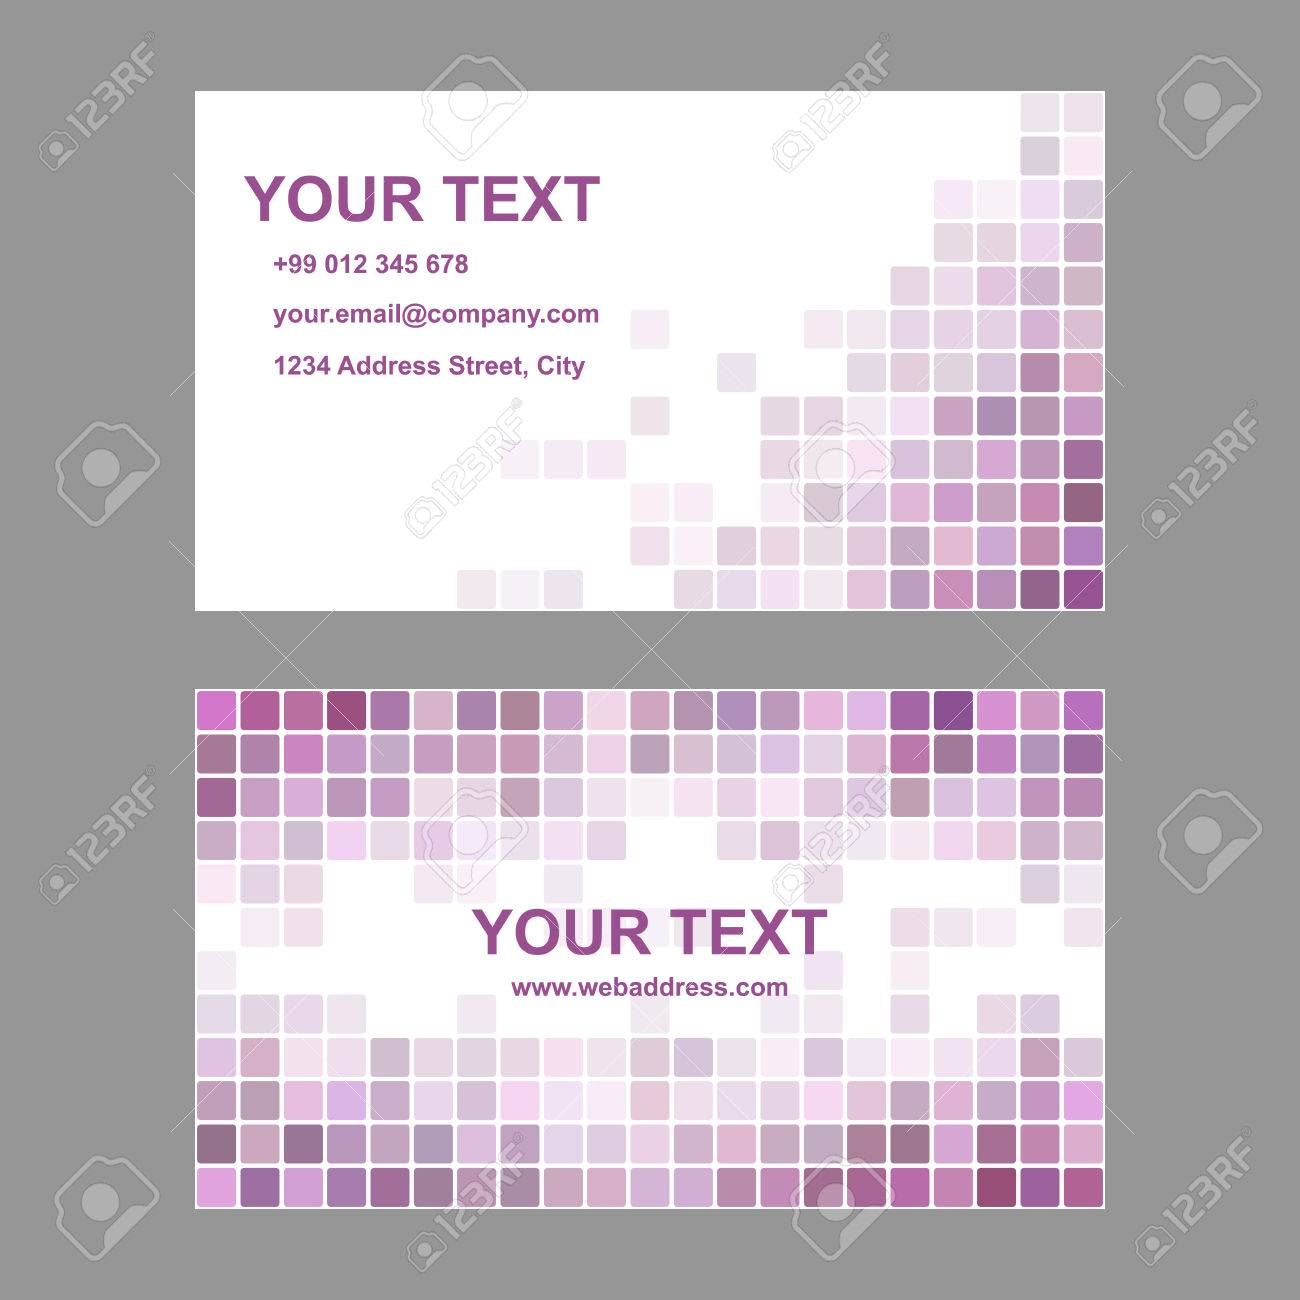 Purple Abstract Business Card Template Background Design From Rounded Squares Stock Vector